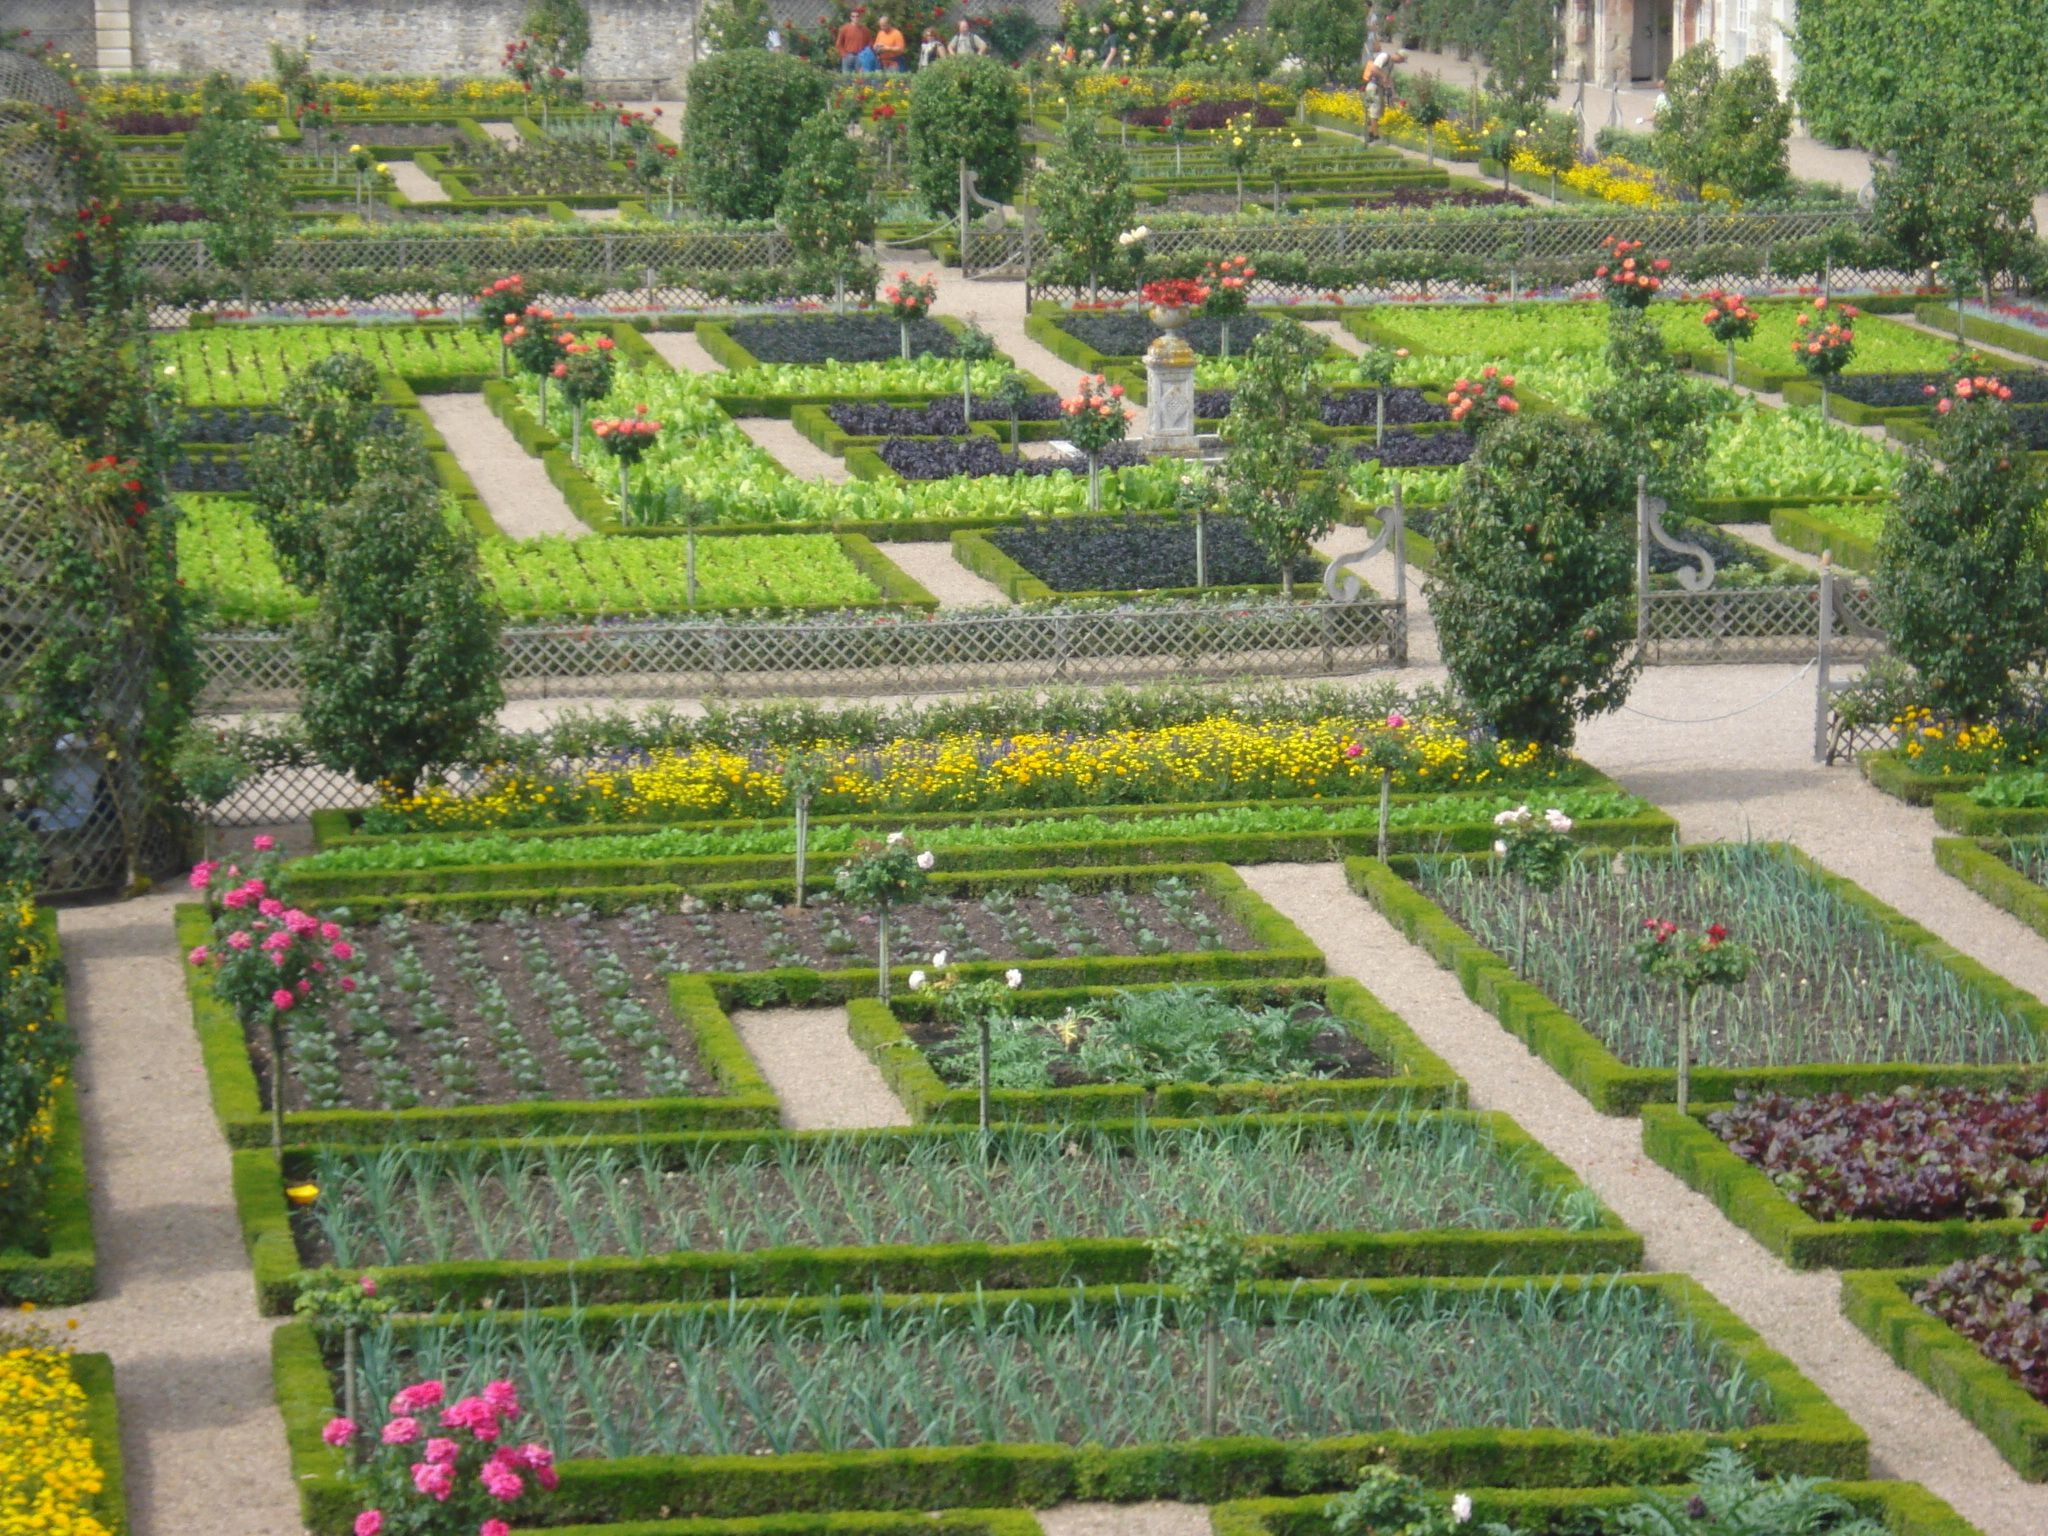 Garden of vegetable parterres chateau de villandry for Garden design versailles